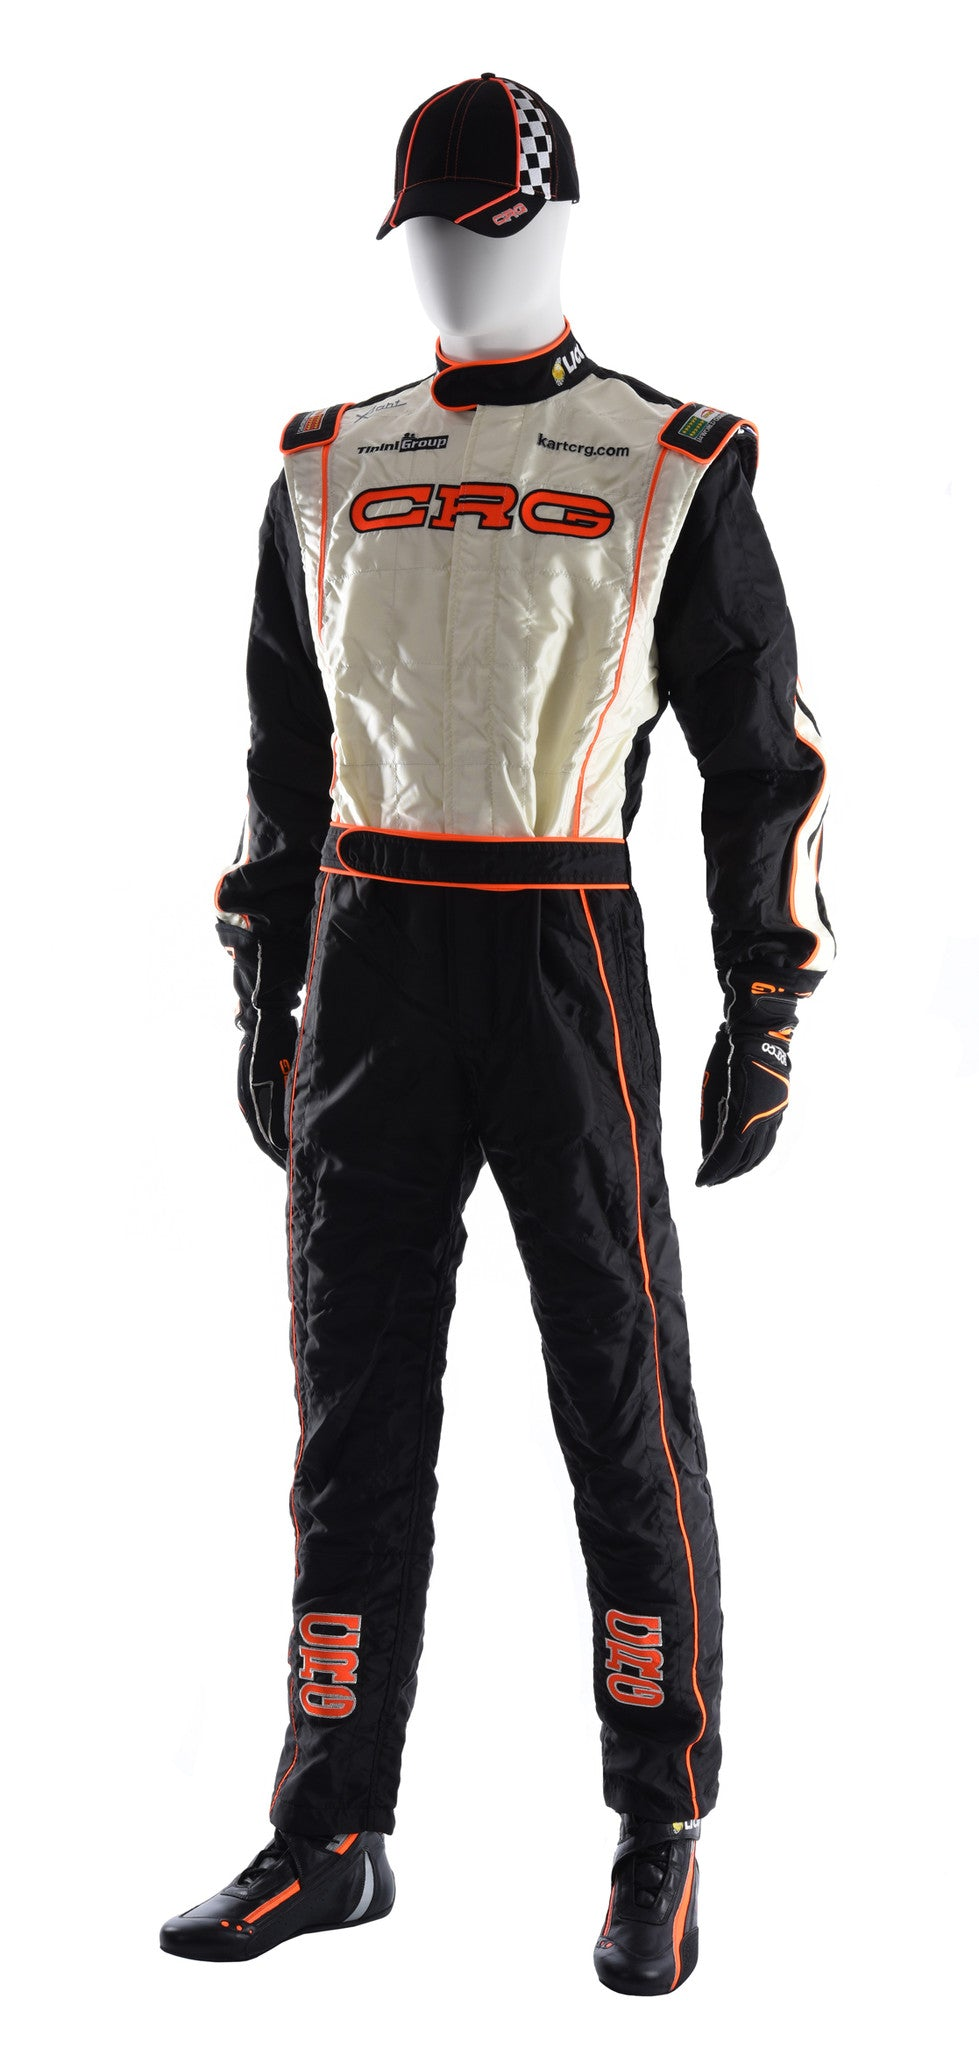 FACTORY CRG RACE SUIT